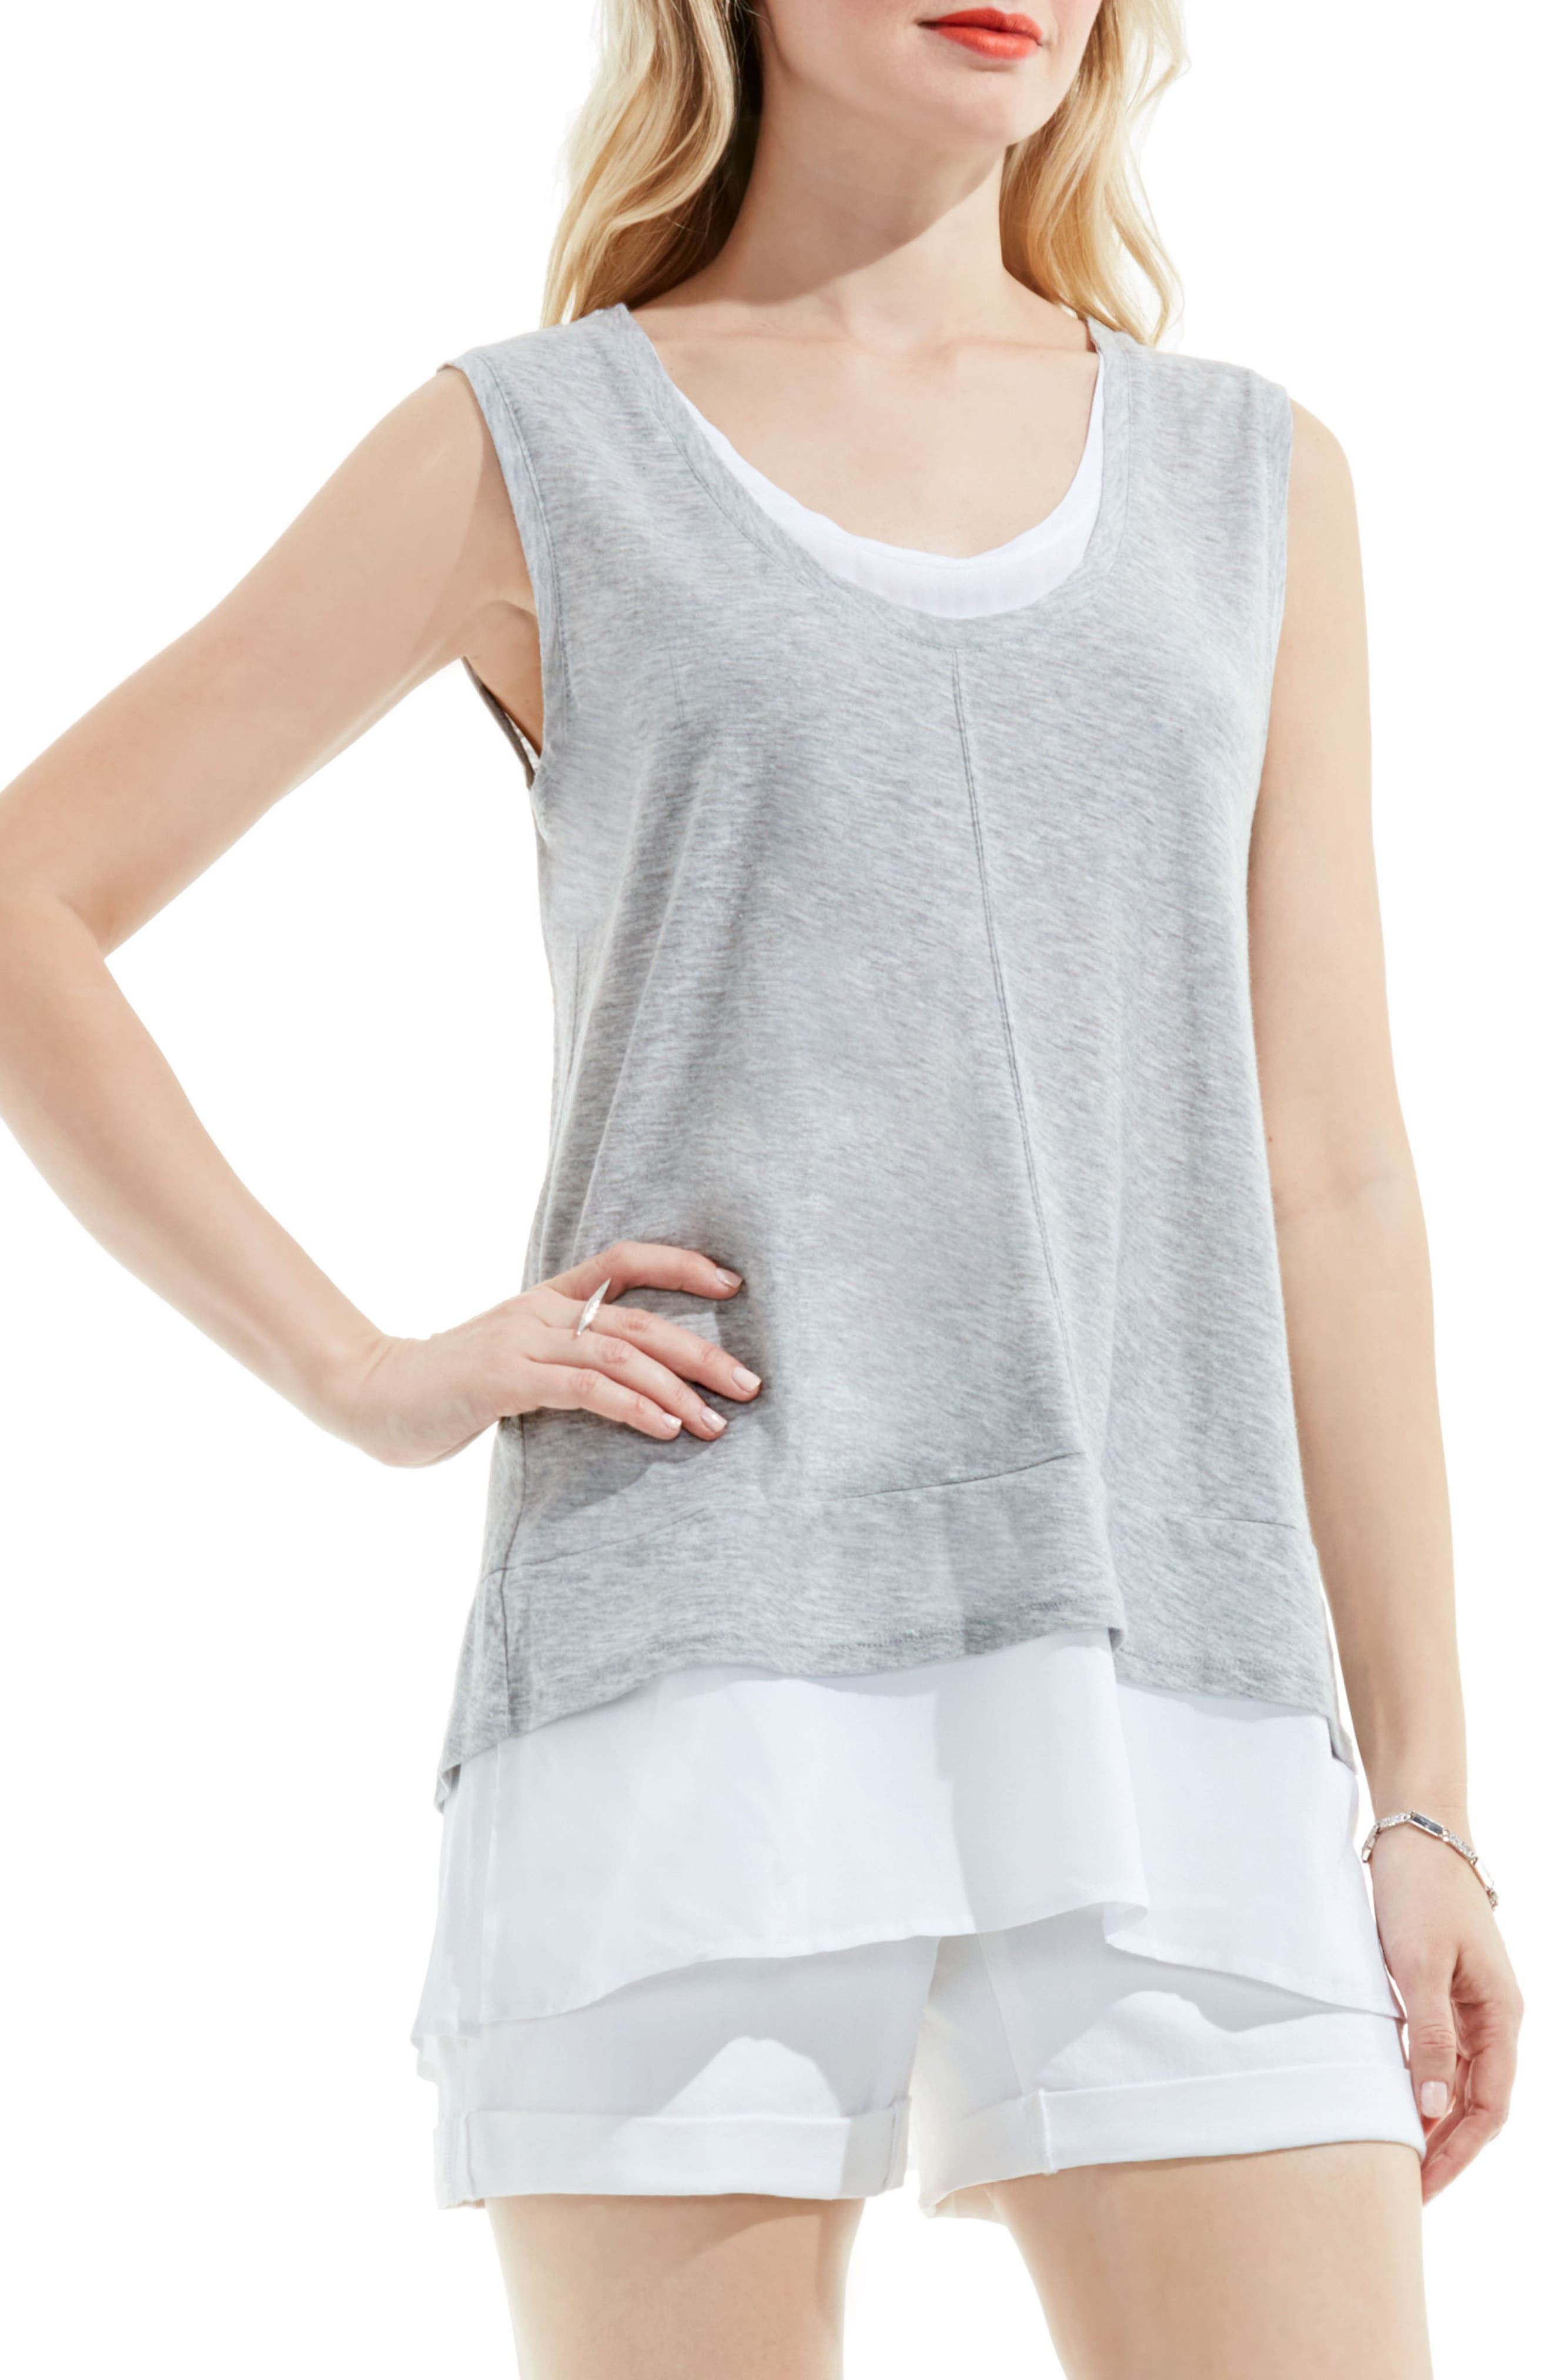 TWO BY VINCE CAMUTO Mixed Media Top in Grey Heather